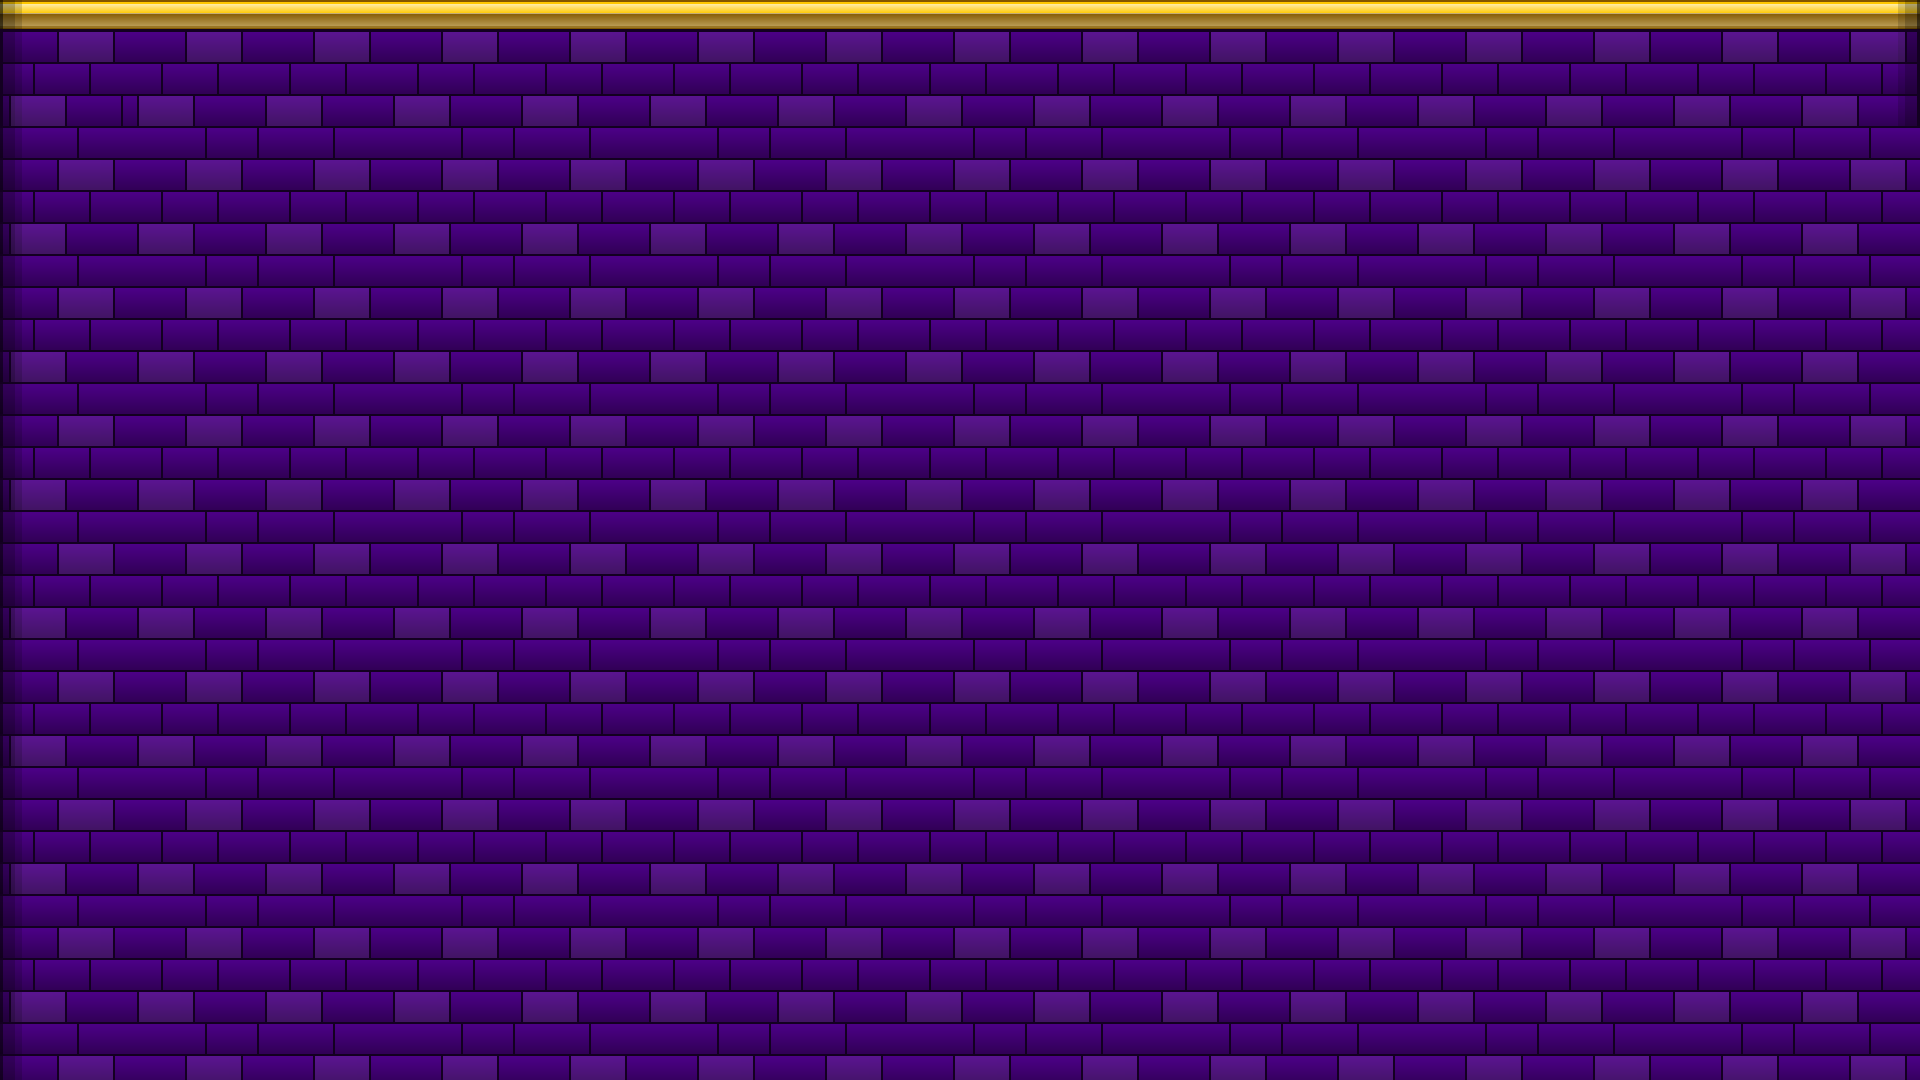 Purple bricks wallpaper brick art 1422150 for Purple brick wallpaper